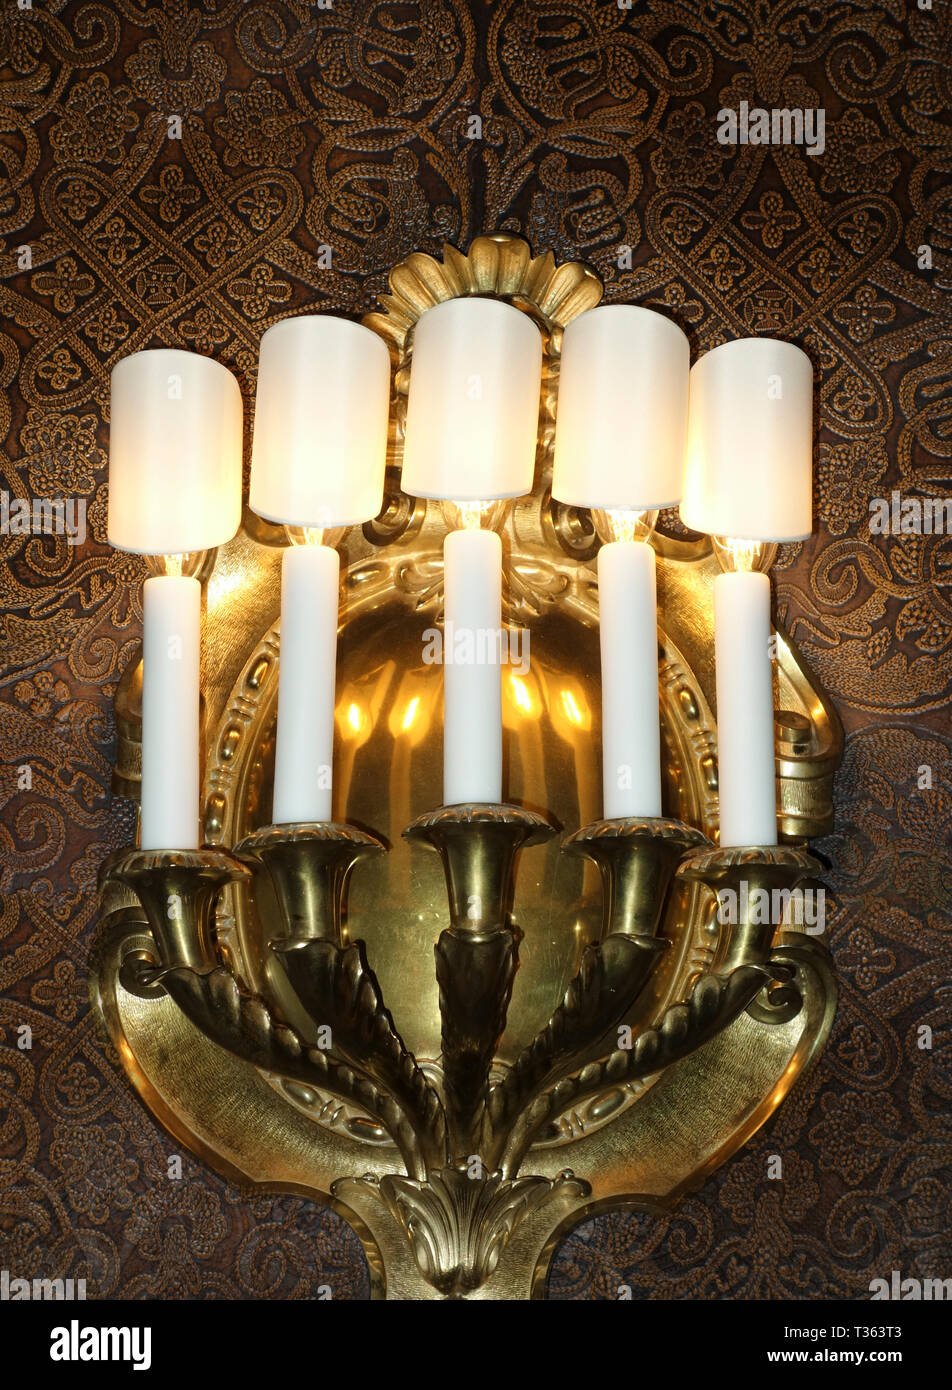 Brass wall sconce on tooled leather wall in Biltmore House, Asheville, North Carolina, US, 2017. - Stock Image